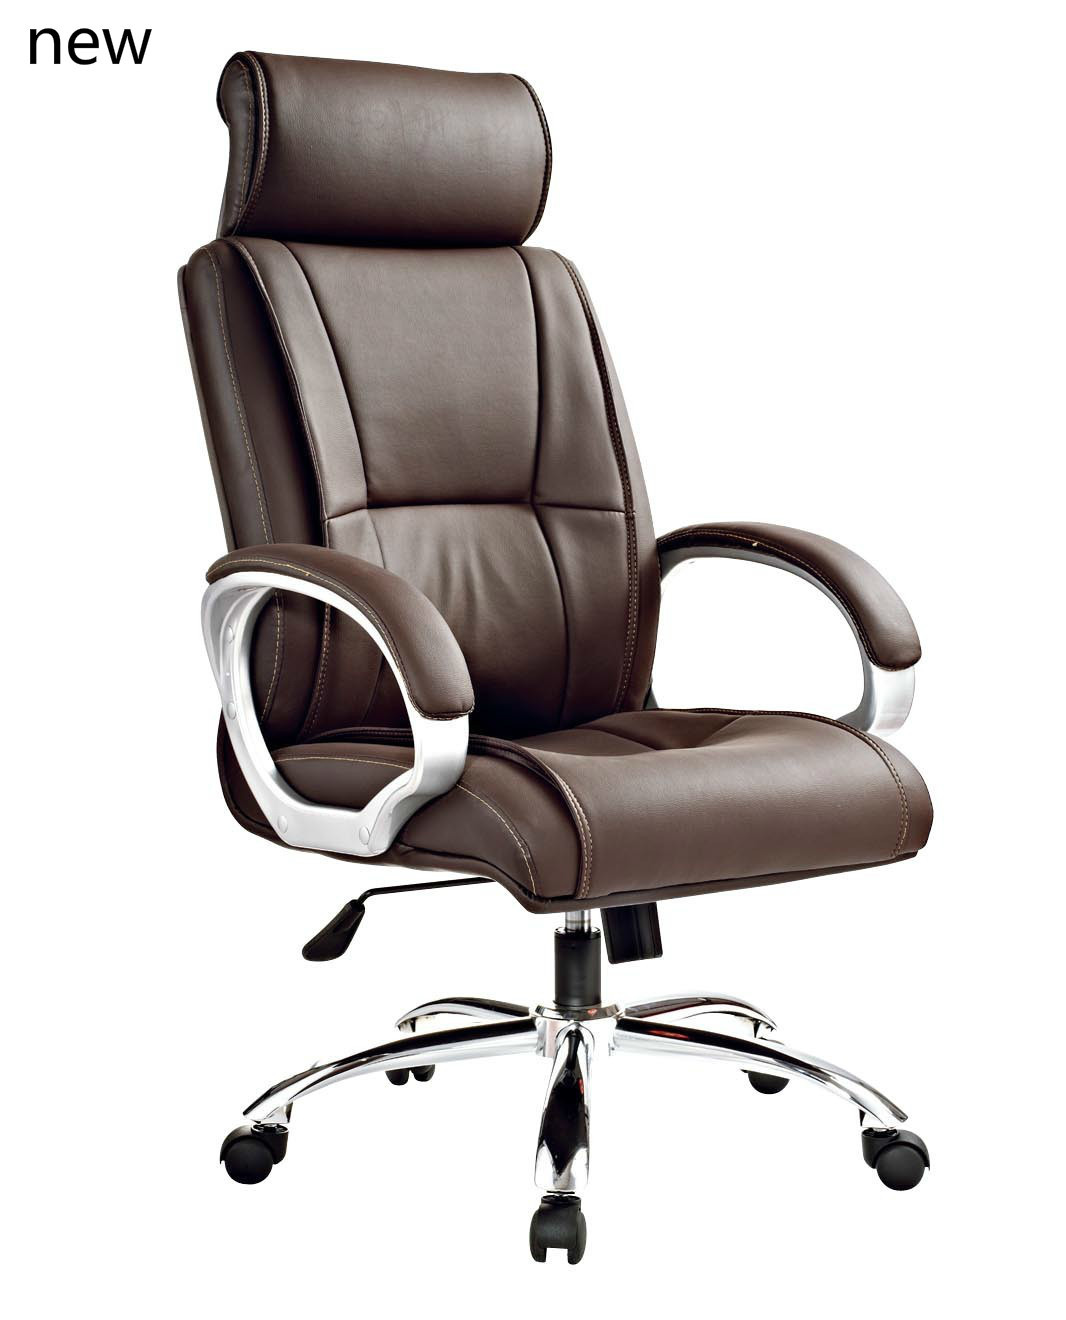 Xiang Jin Furniture Can Happy Swivel Ergonomic Home Computer To Work In An Office Chair цена